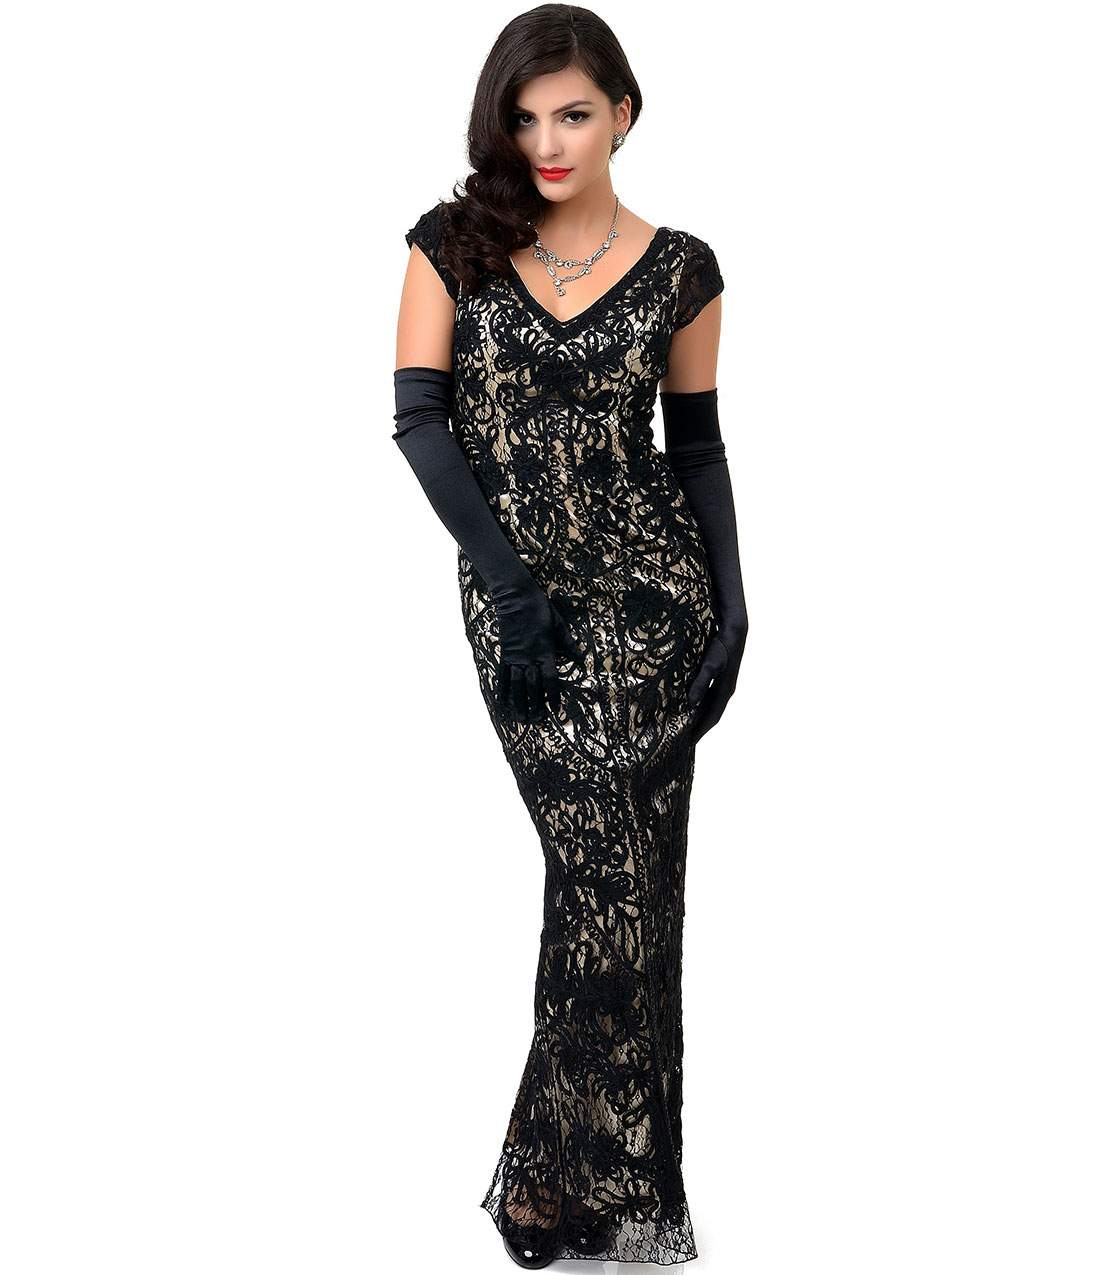 1930s Evening Dresses | Old Hollywood Dress 1930S Style Black  Nude Lace Cap Sleeve Fitted Gown $176.00 AT vintagedancer.com